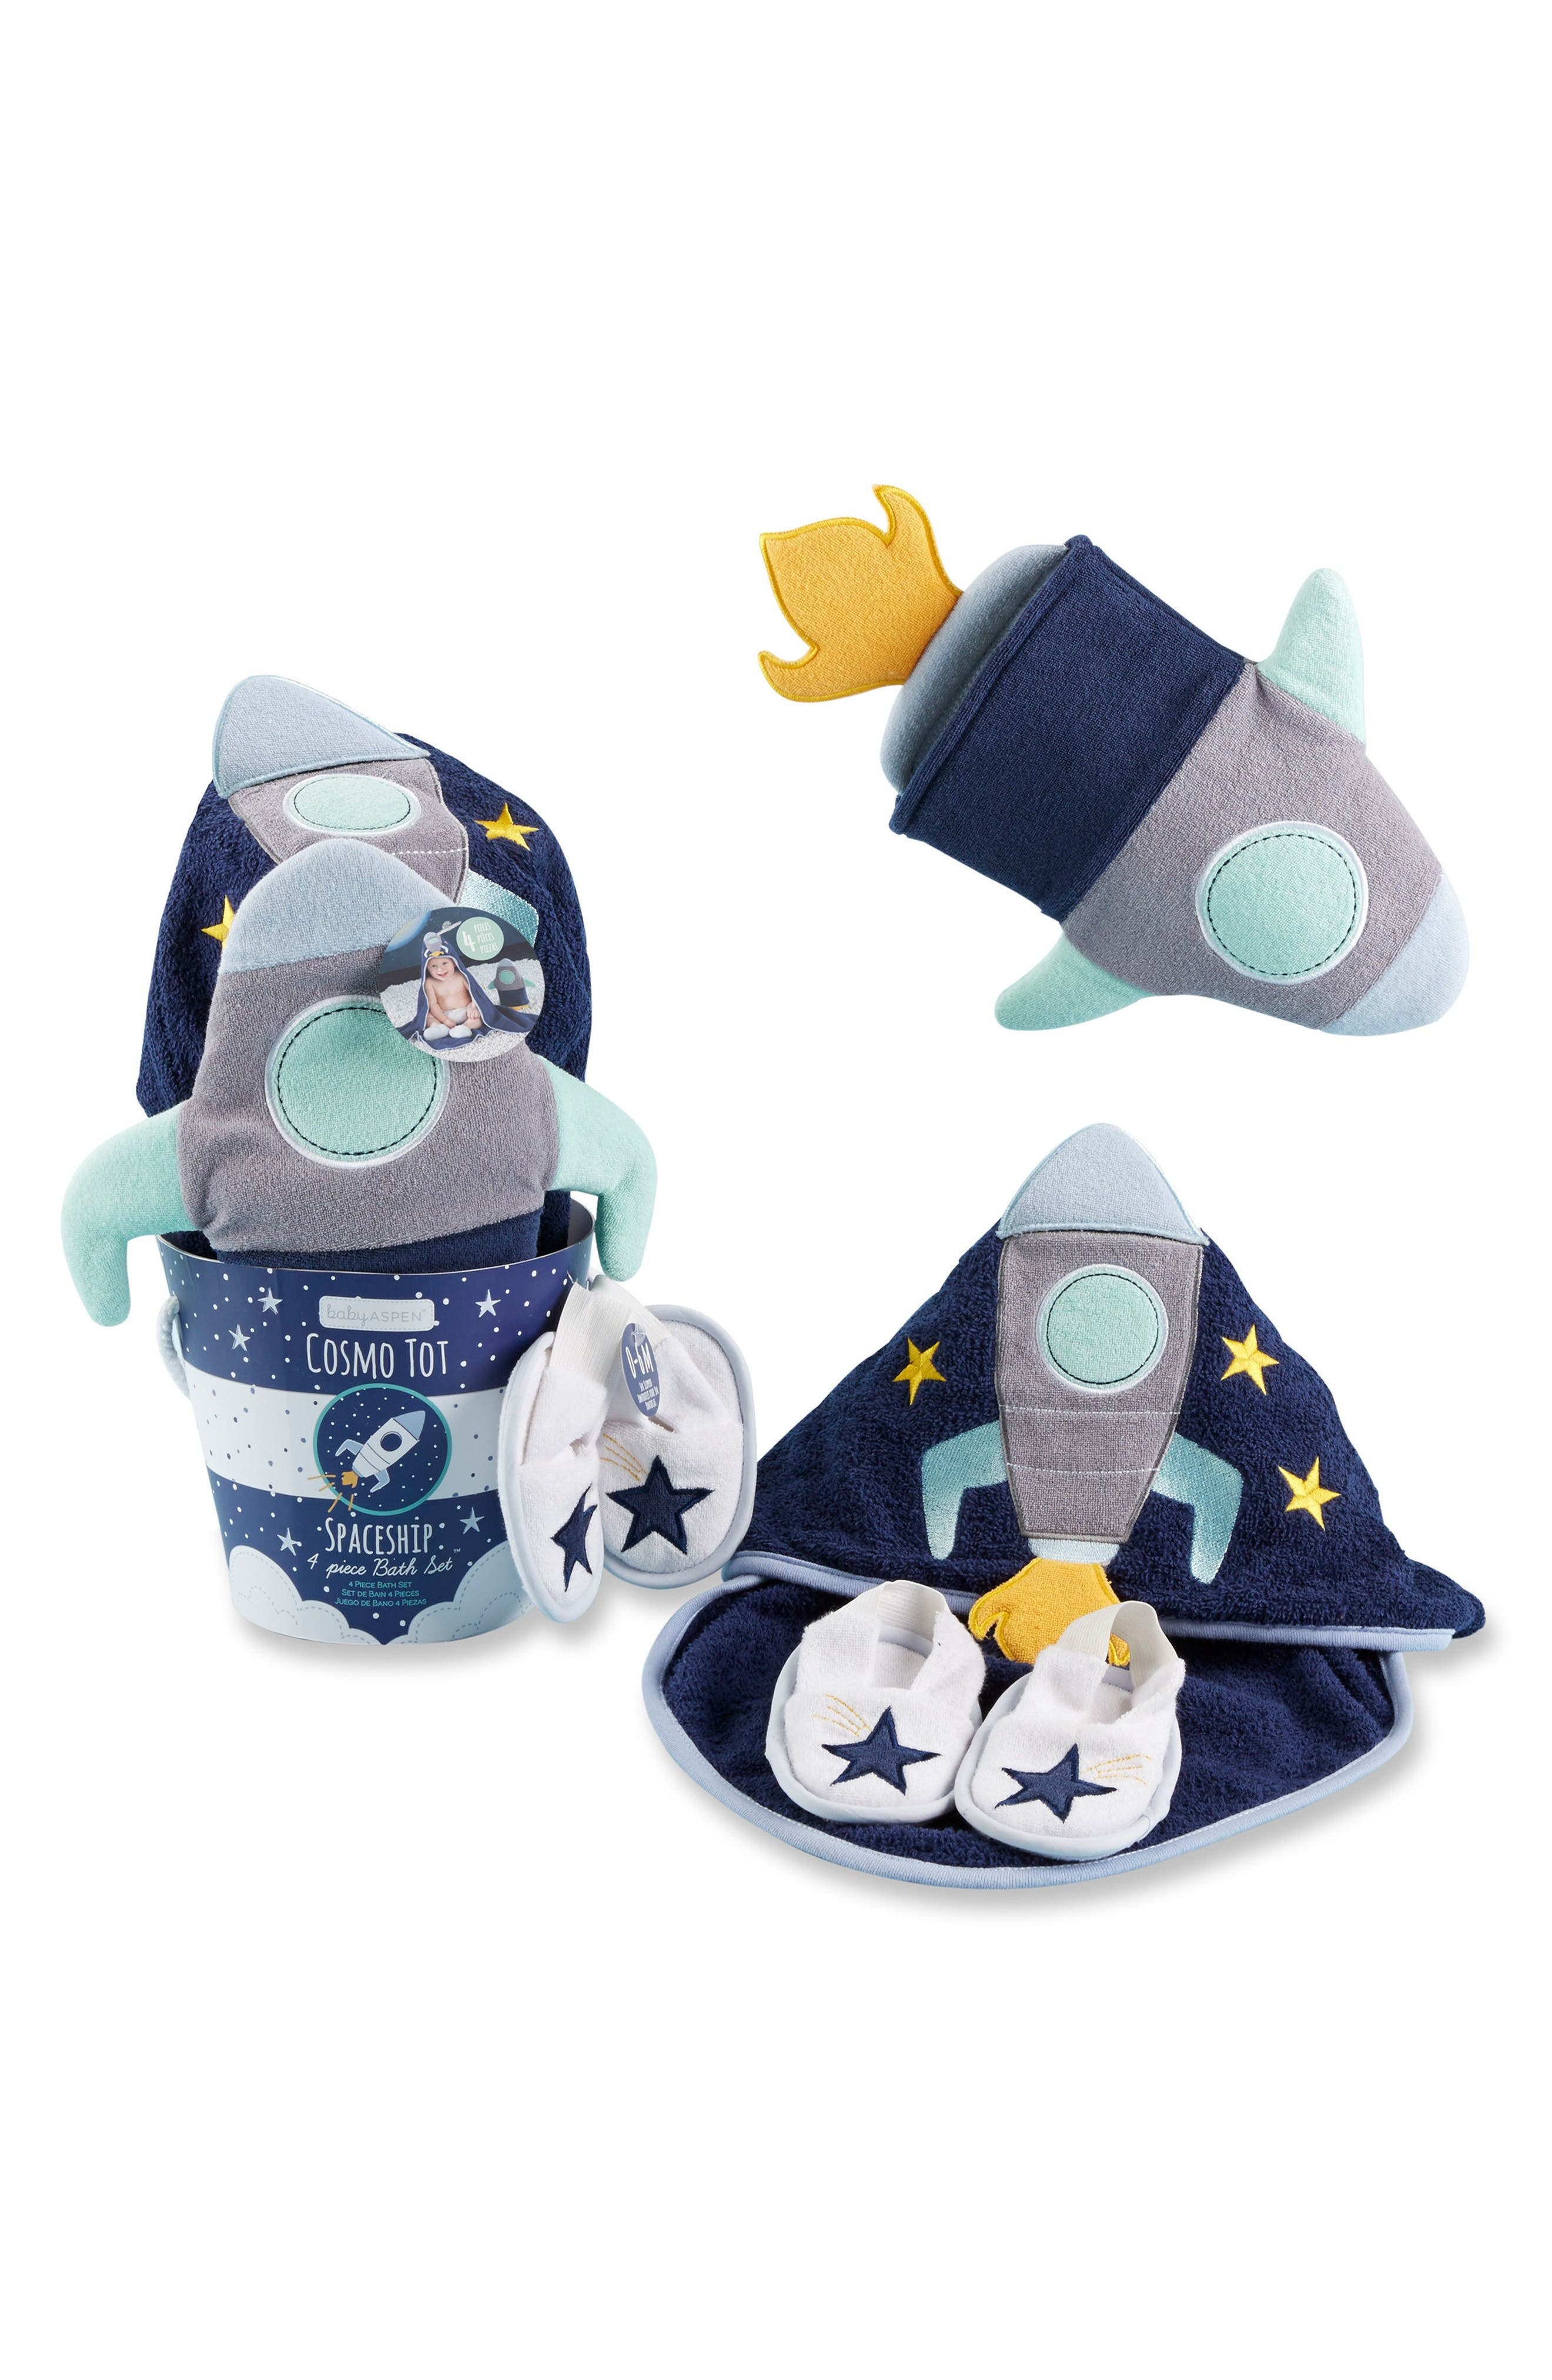 Main Image - Baby Aspen Cosmo Tot 4-Piece Bath Gift Set